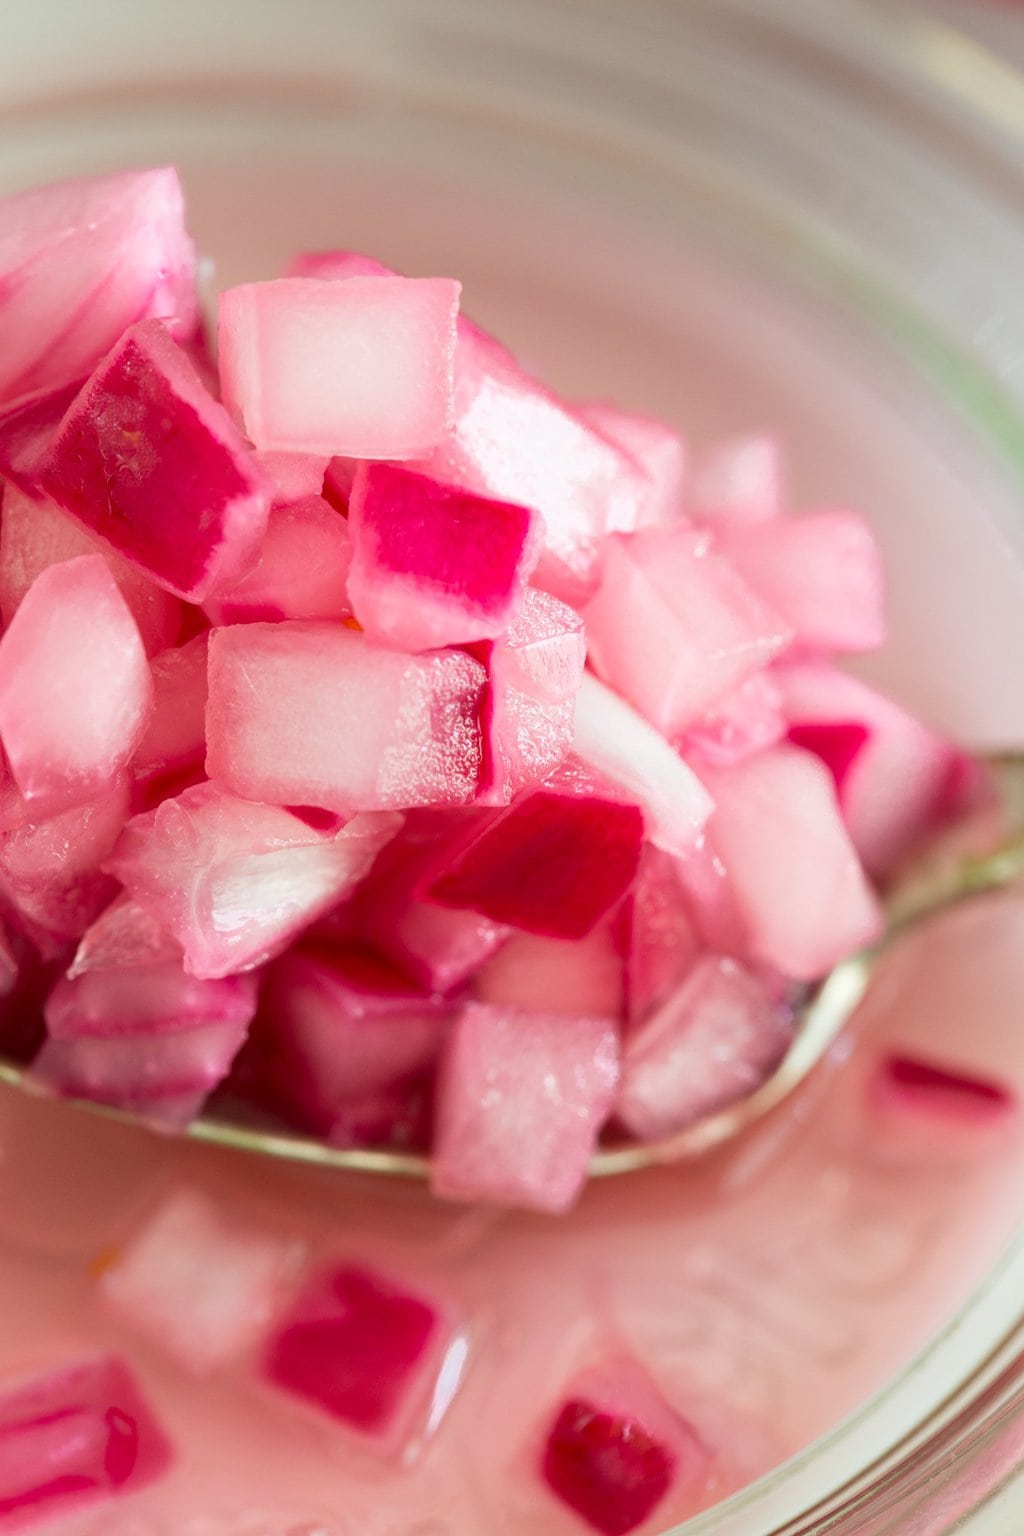 Lemon Pickled Red Onions - a beautiful and delicious condiment that takes less than 10 minutes to make. Perfect for sandwiches, salads, pizzas... anything! thecafesucrefarine.com